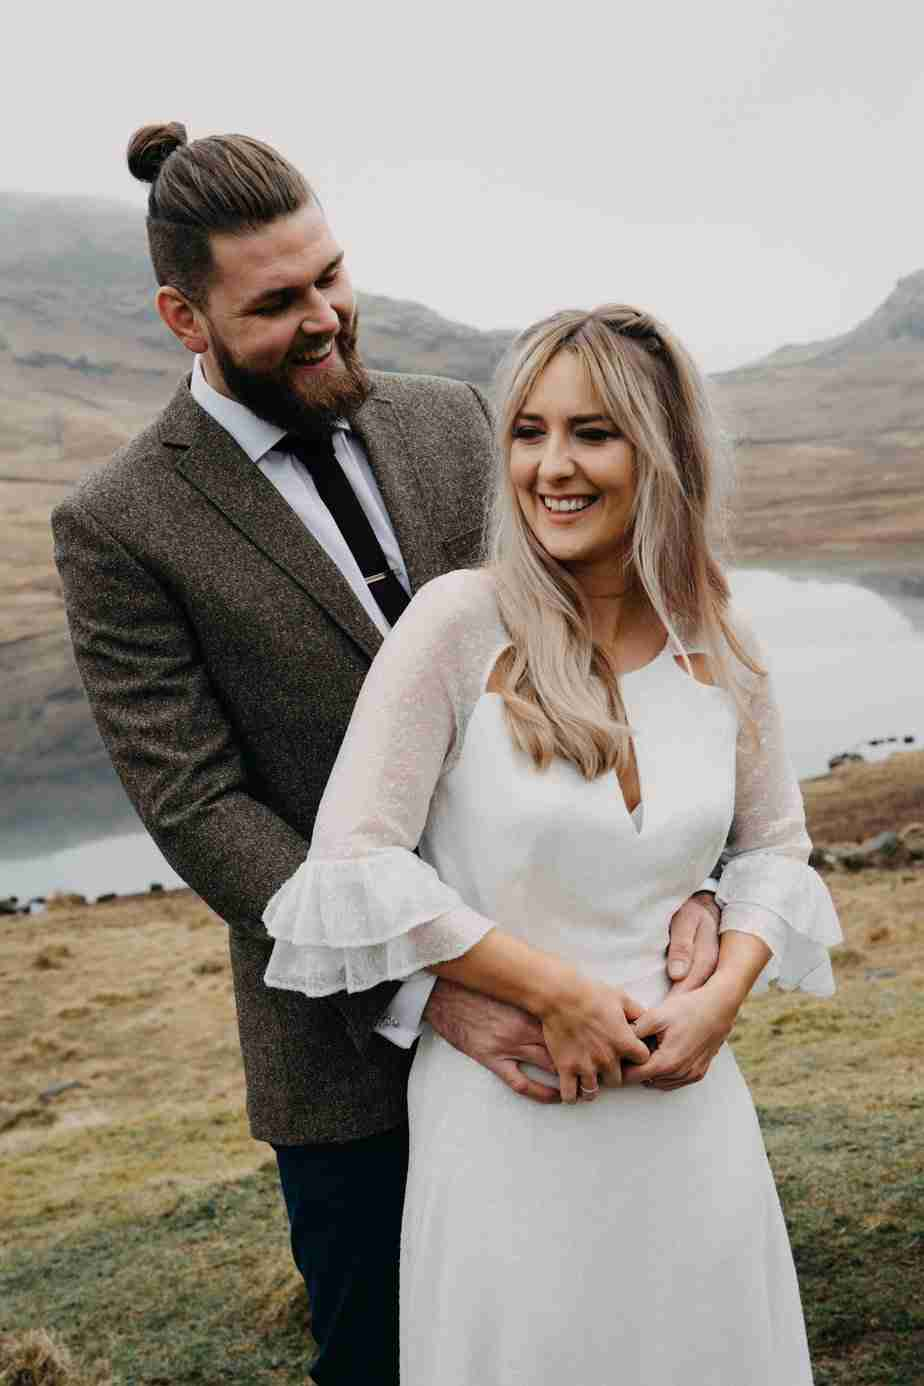 Blonde bride with half-up, half-down, bohemian, hairstyle laughs with groom at elopement wedding in The Lakes.